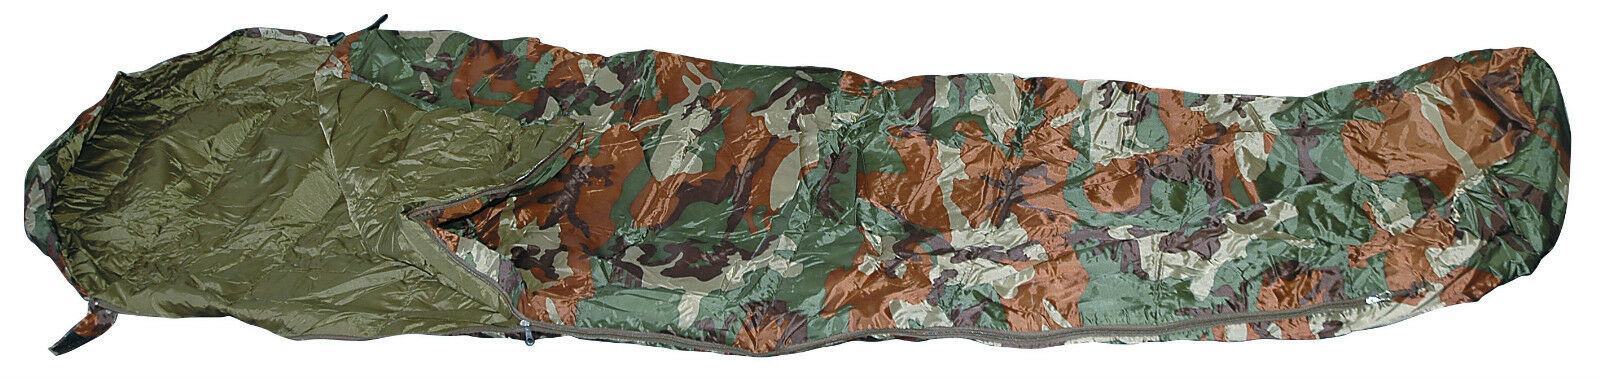 Army Sleeping Bag  Ultra-Lite Ranger US Army Woodland Camouflage Lightweight Camo Camouflage  high quality & fast shipping